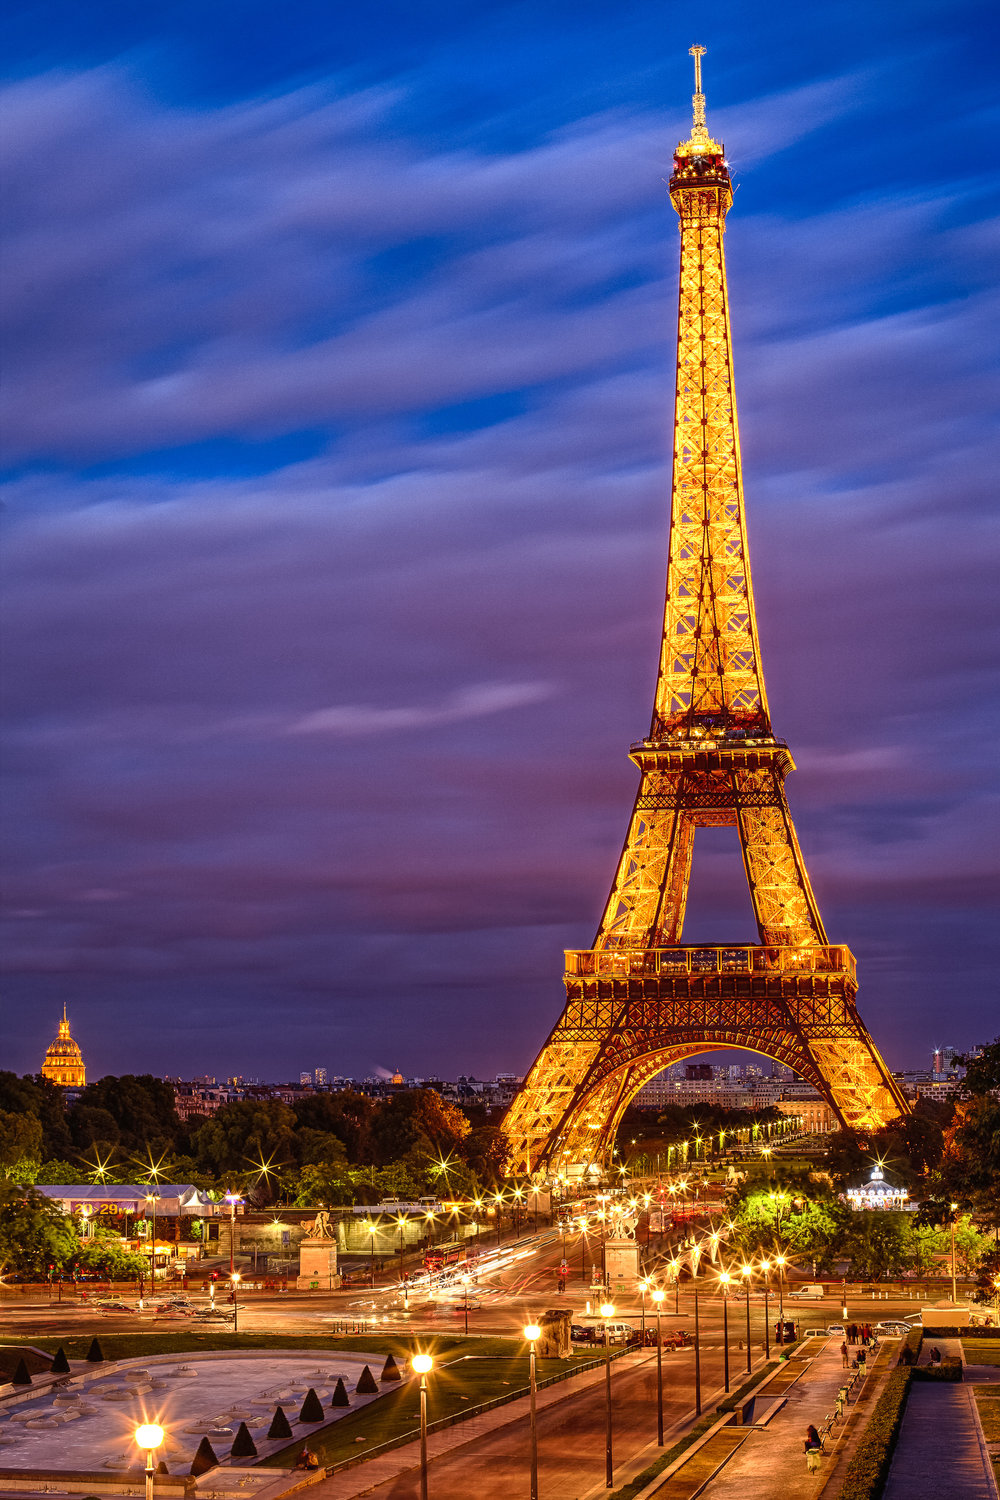 Eiffel Tower Sunset - Paris France-004.jpg